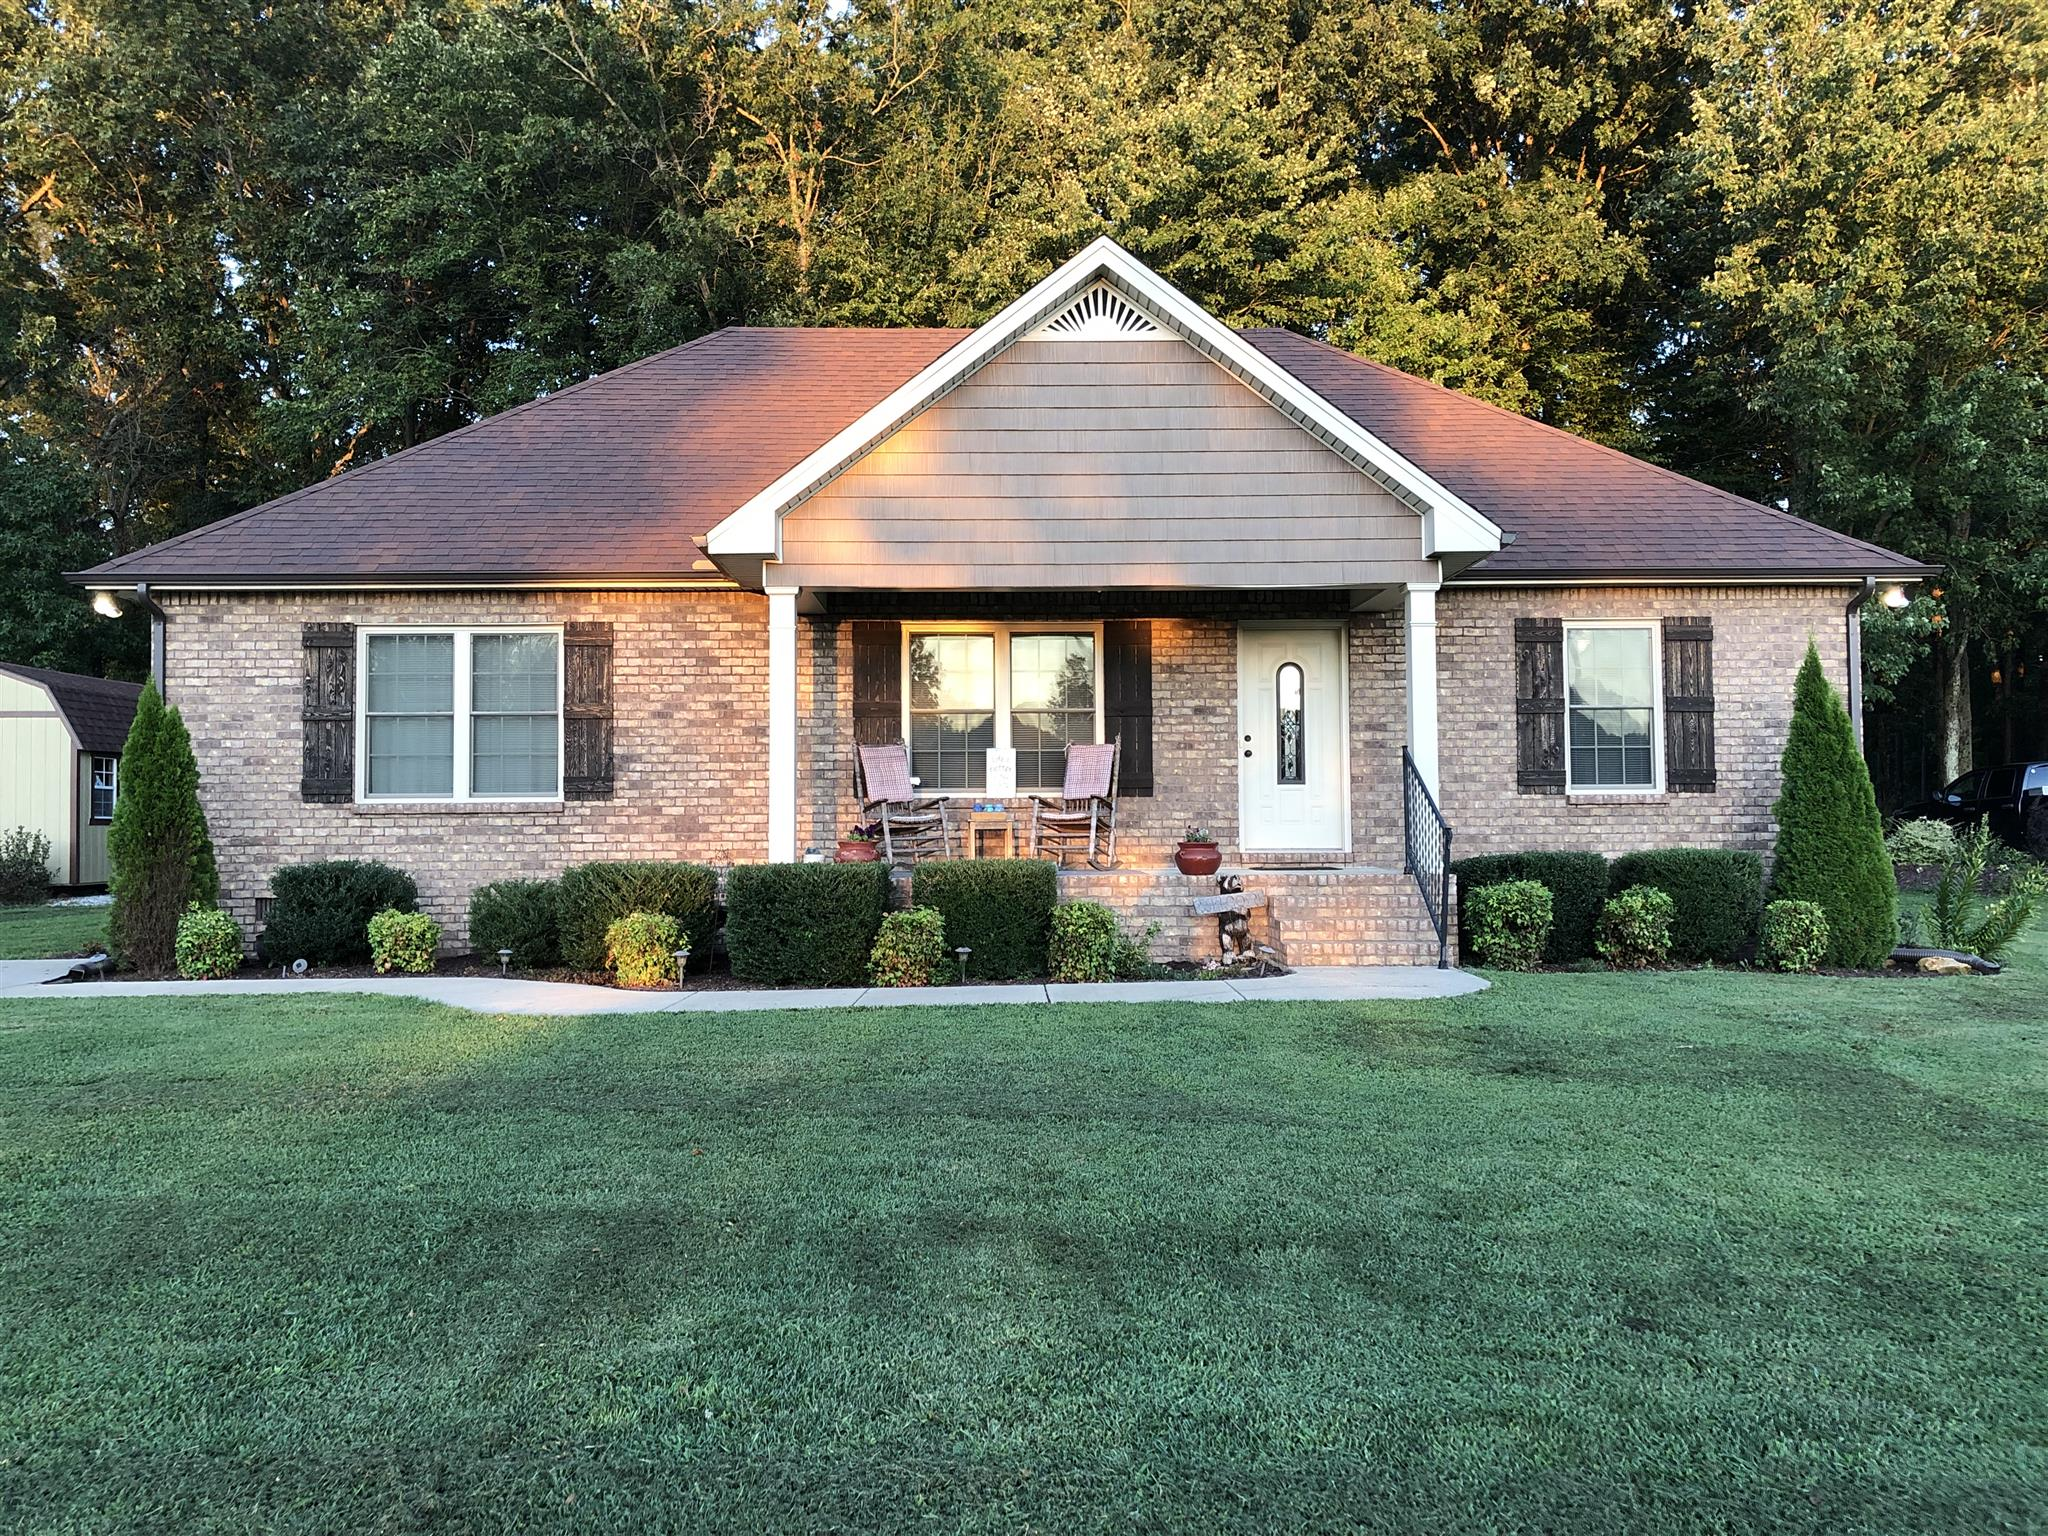 1154 Mount Vernon Rd, Bethpage, TN 37022 - Bethpage, TN real estate listing